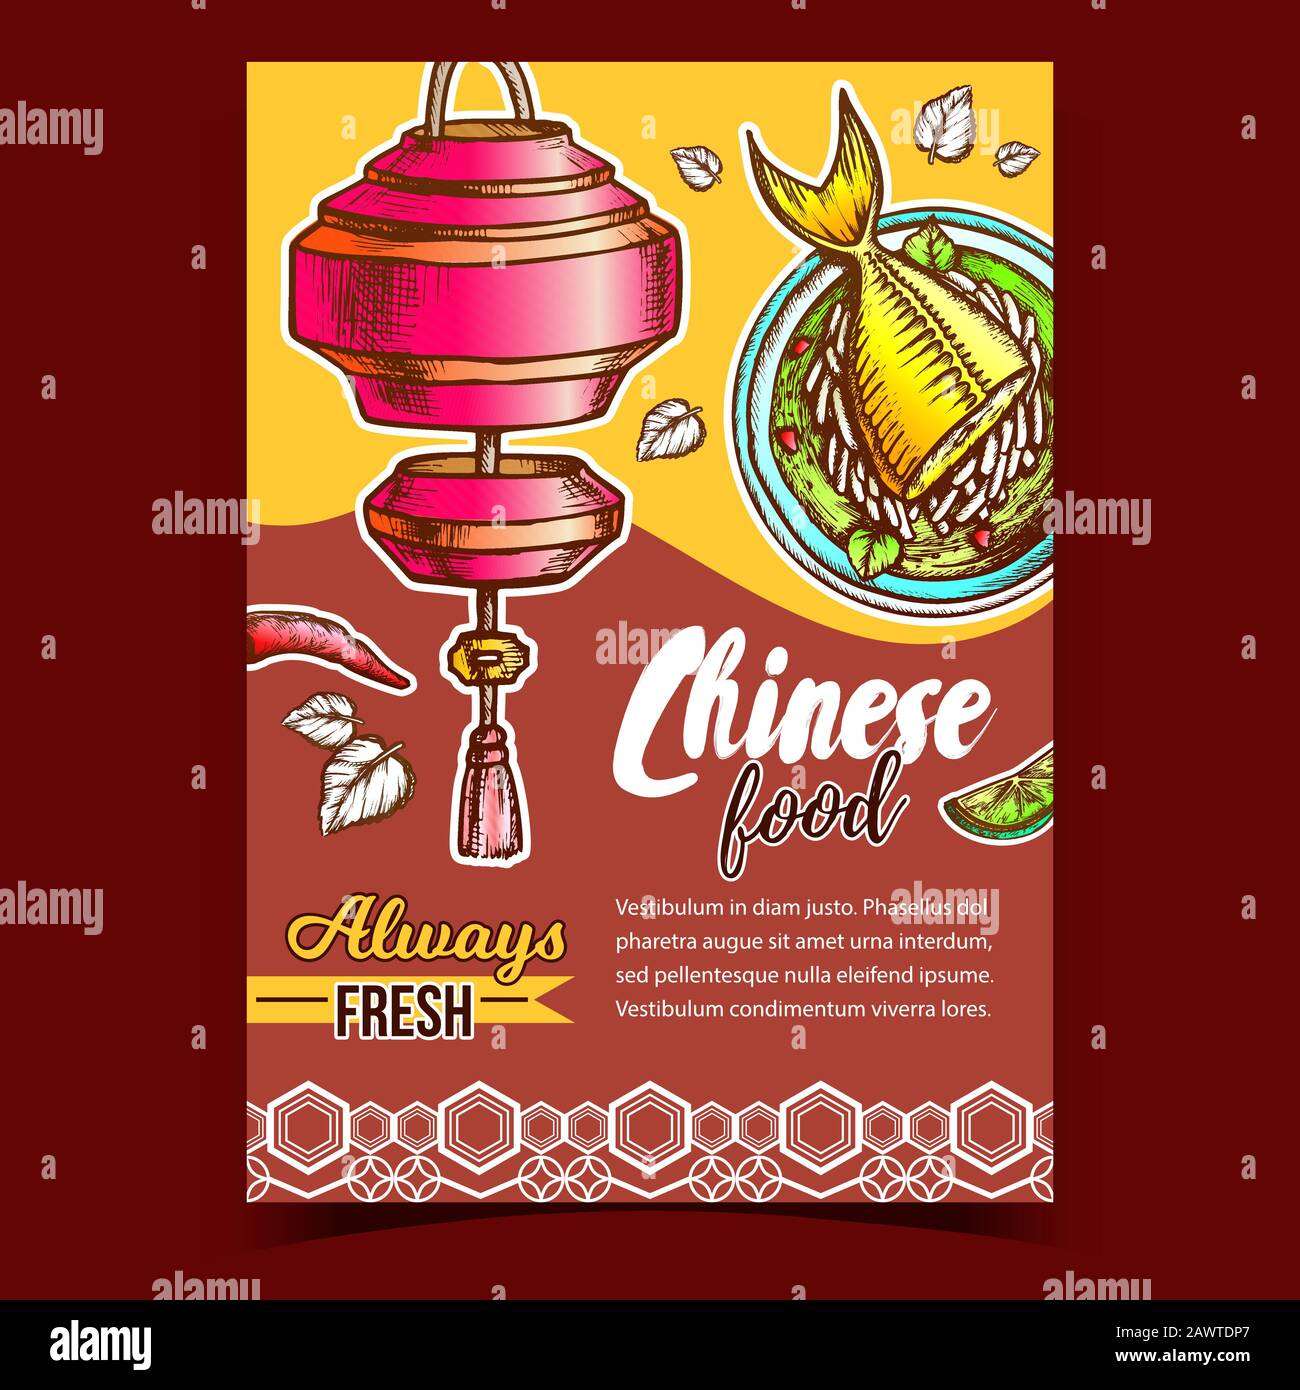 Chinese Food Restaurant Advertising Poster Vector Stock Vector Image Art Alamy